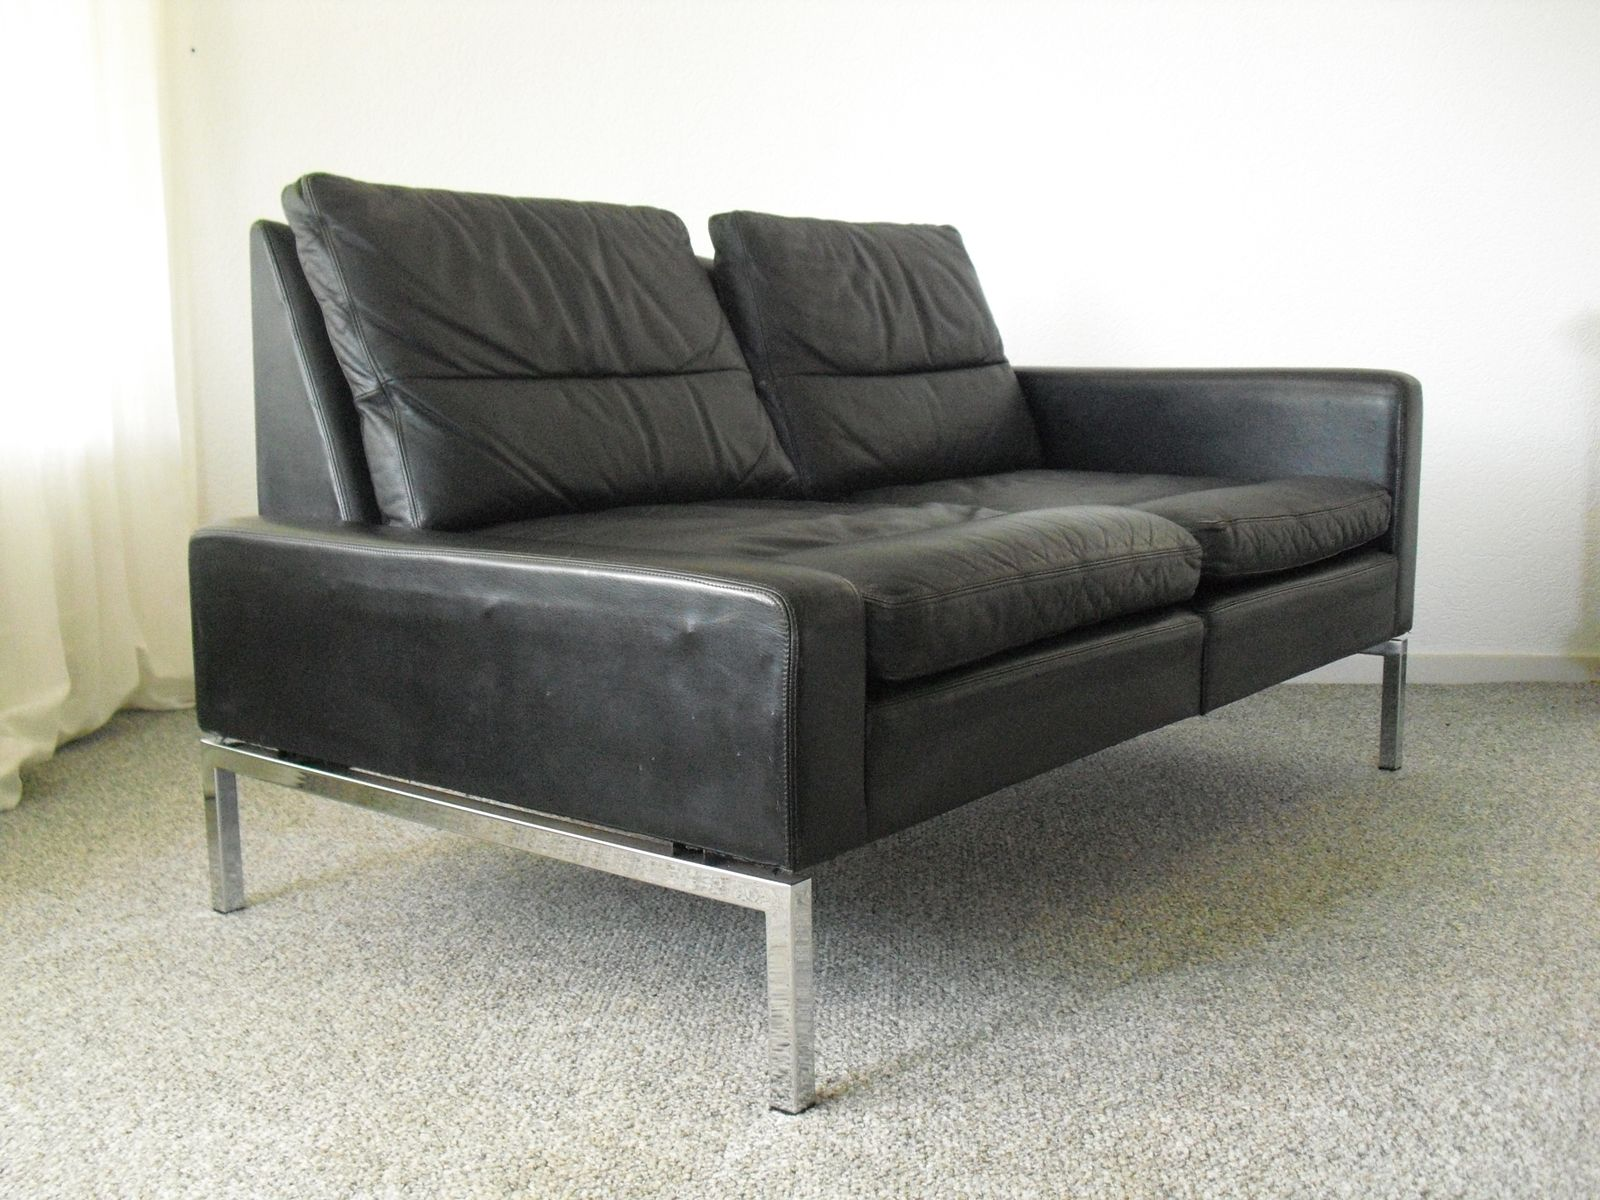 Mid century modern leather sofa 1960s